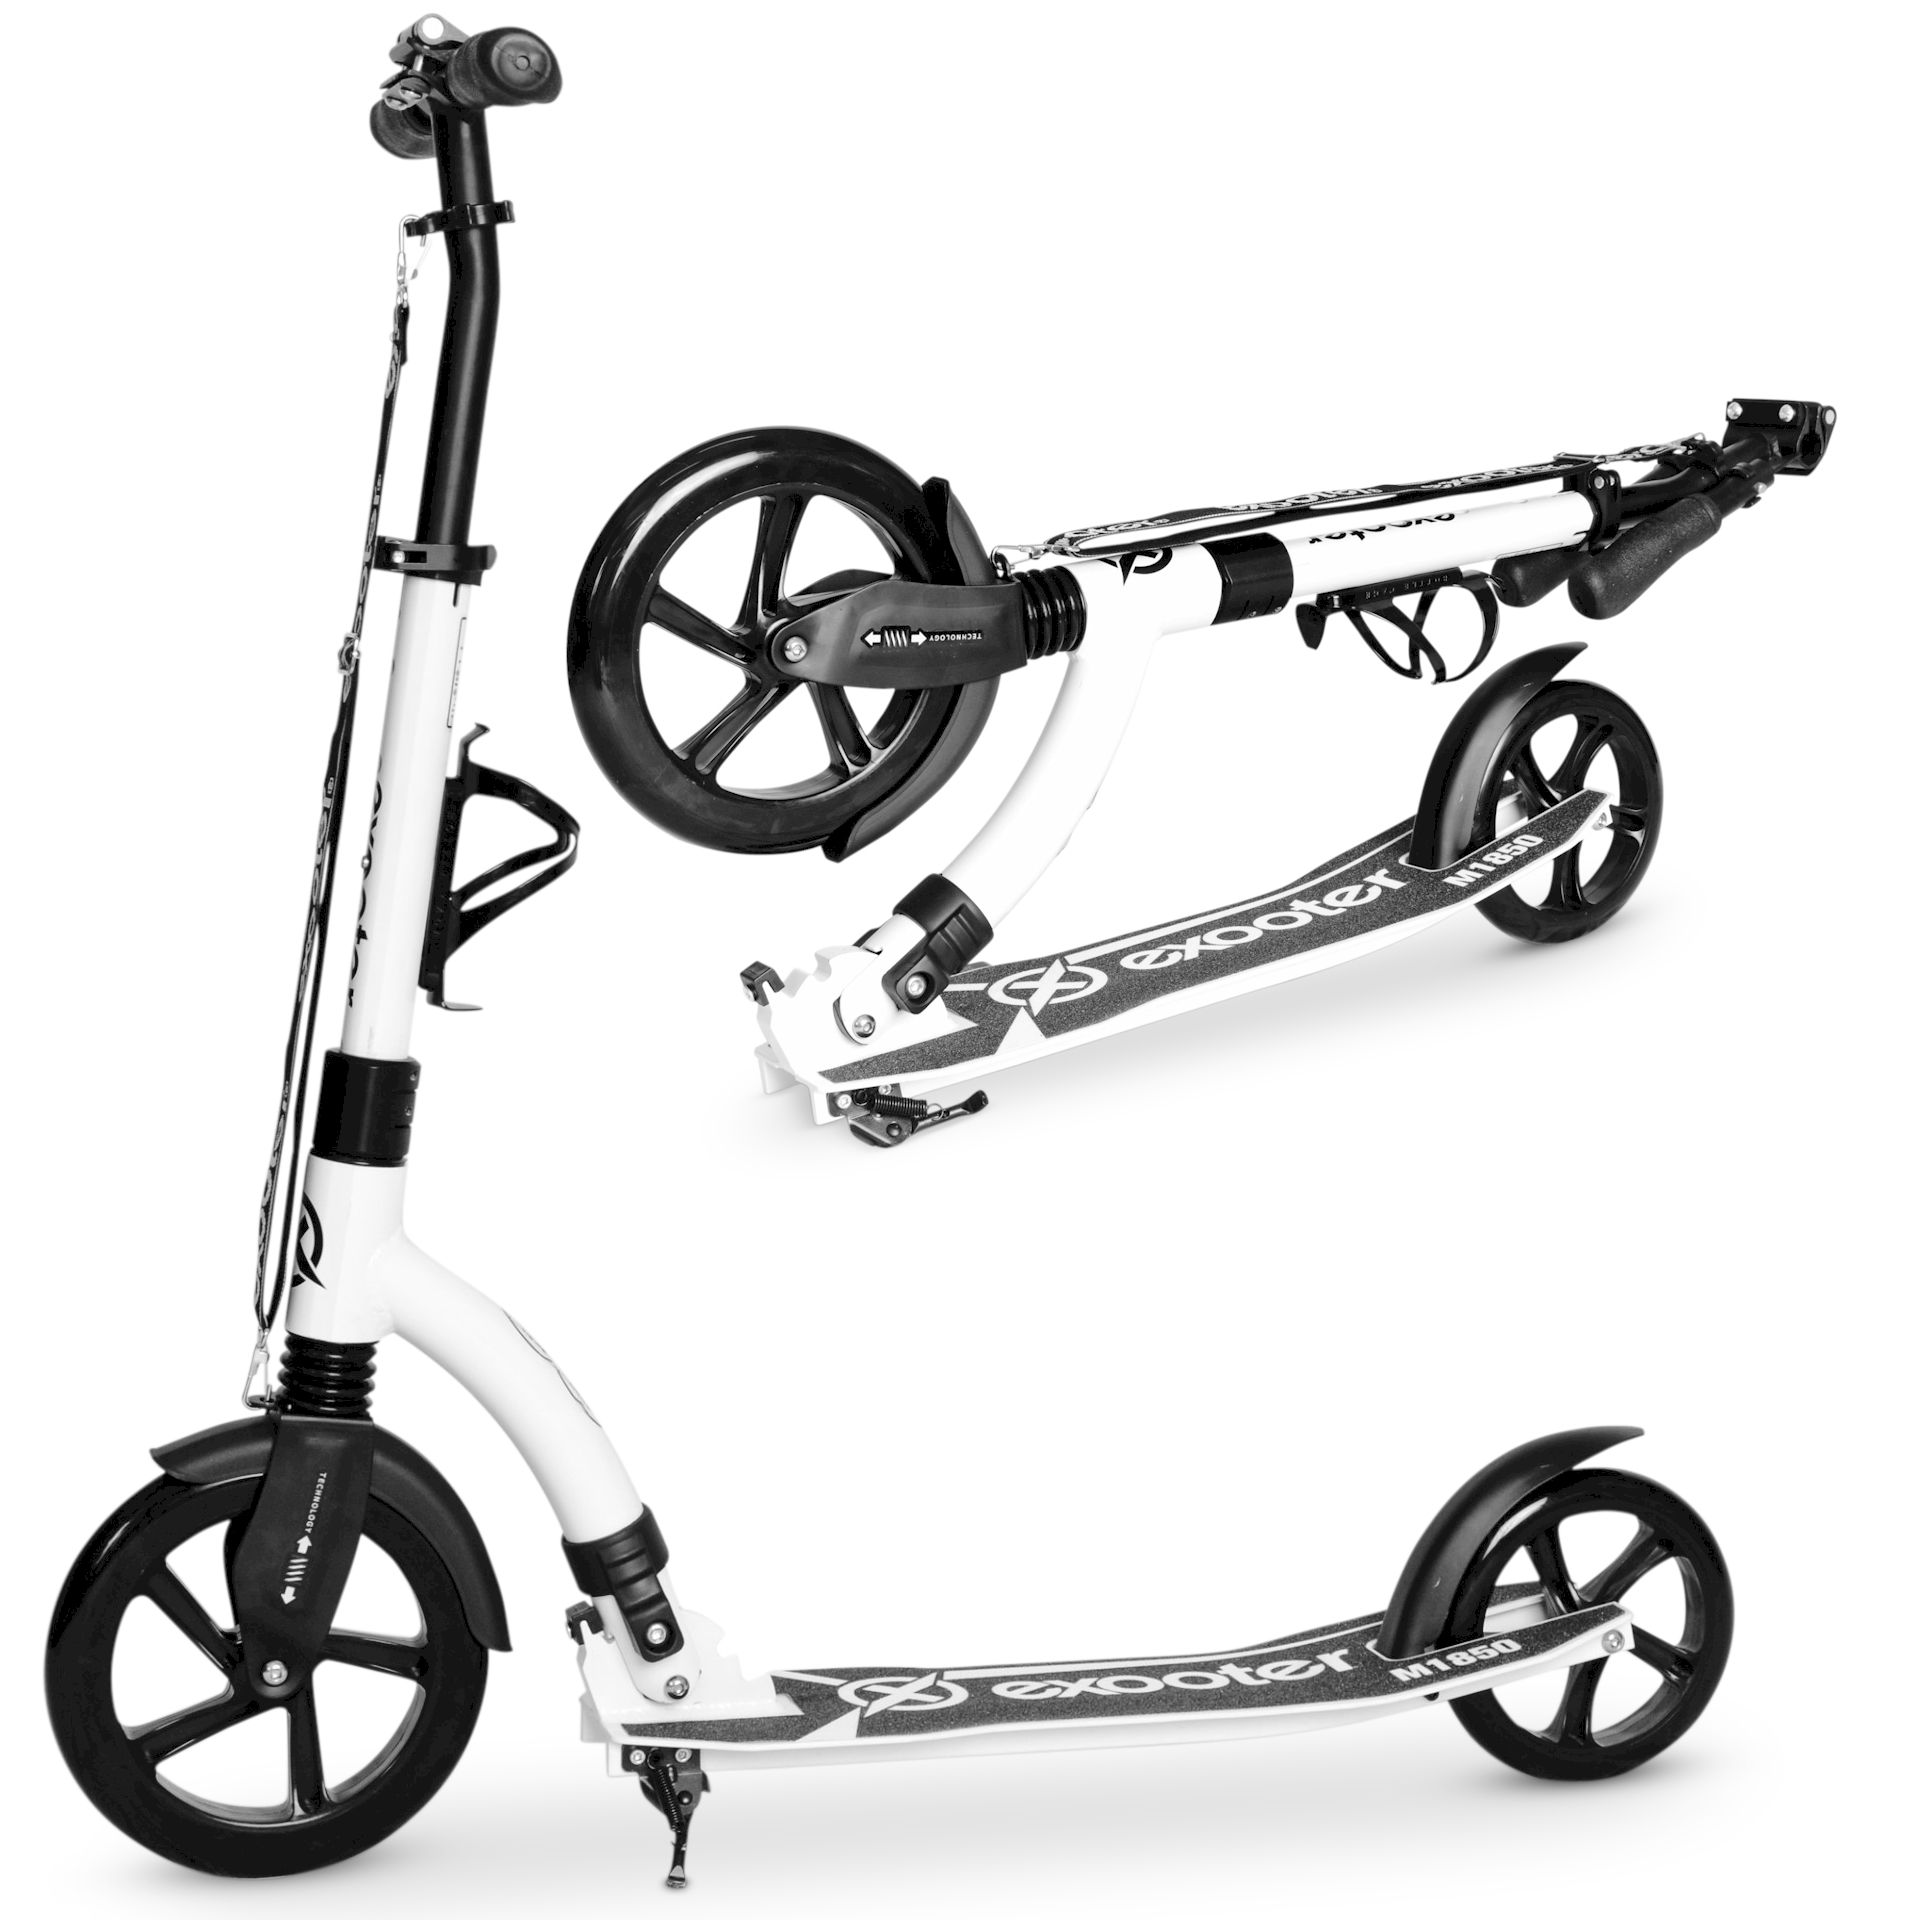 EXOOTER M1850WB 6XL Adult Kick Scooter With Front Shocks And 240mm/180mm Black Wheels In White Finish.